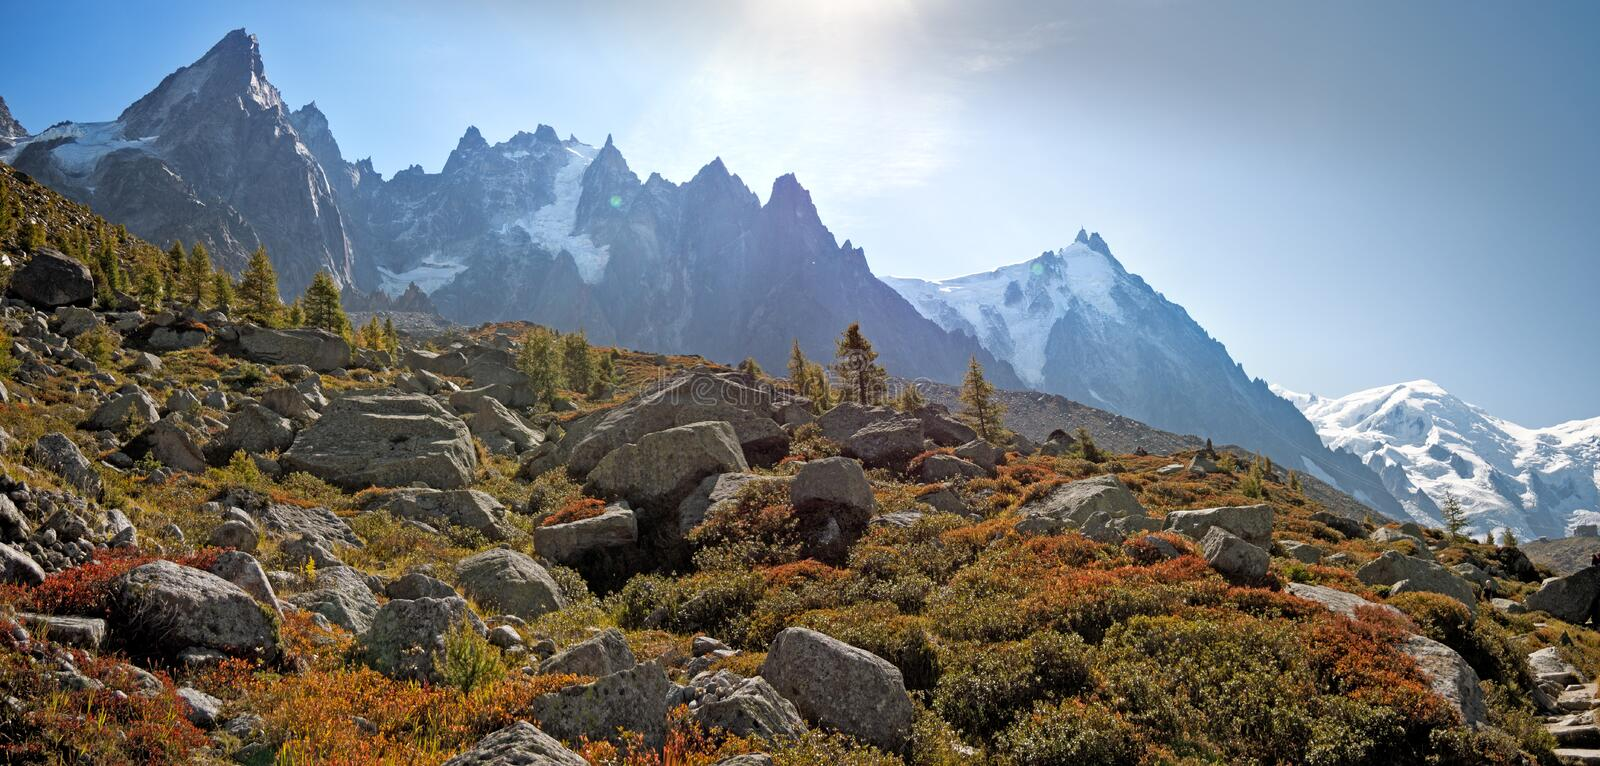 The high peaks of the chamonix valley and Mont Blanc Massif in the village of Chamonix in France. royalty free stock image